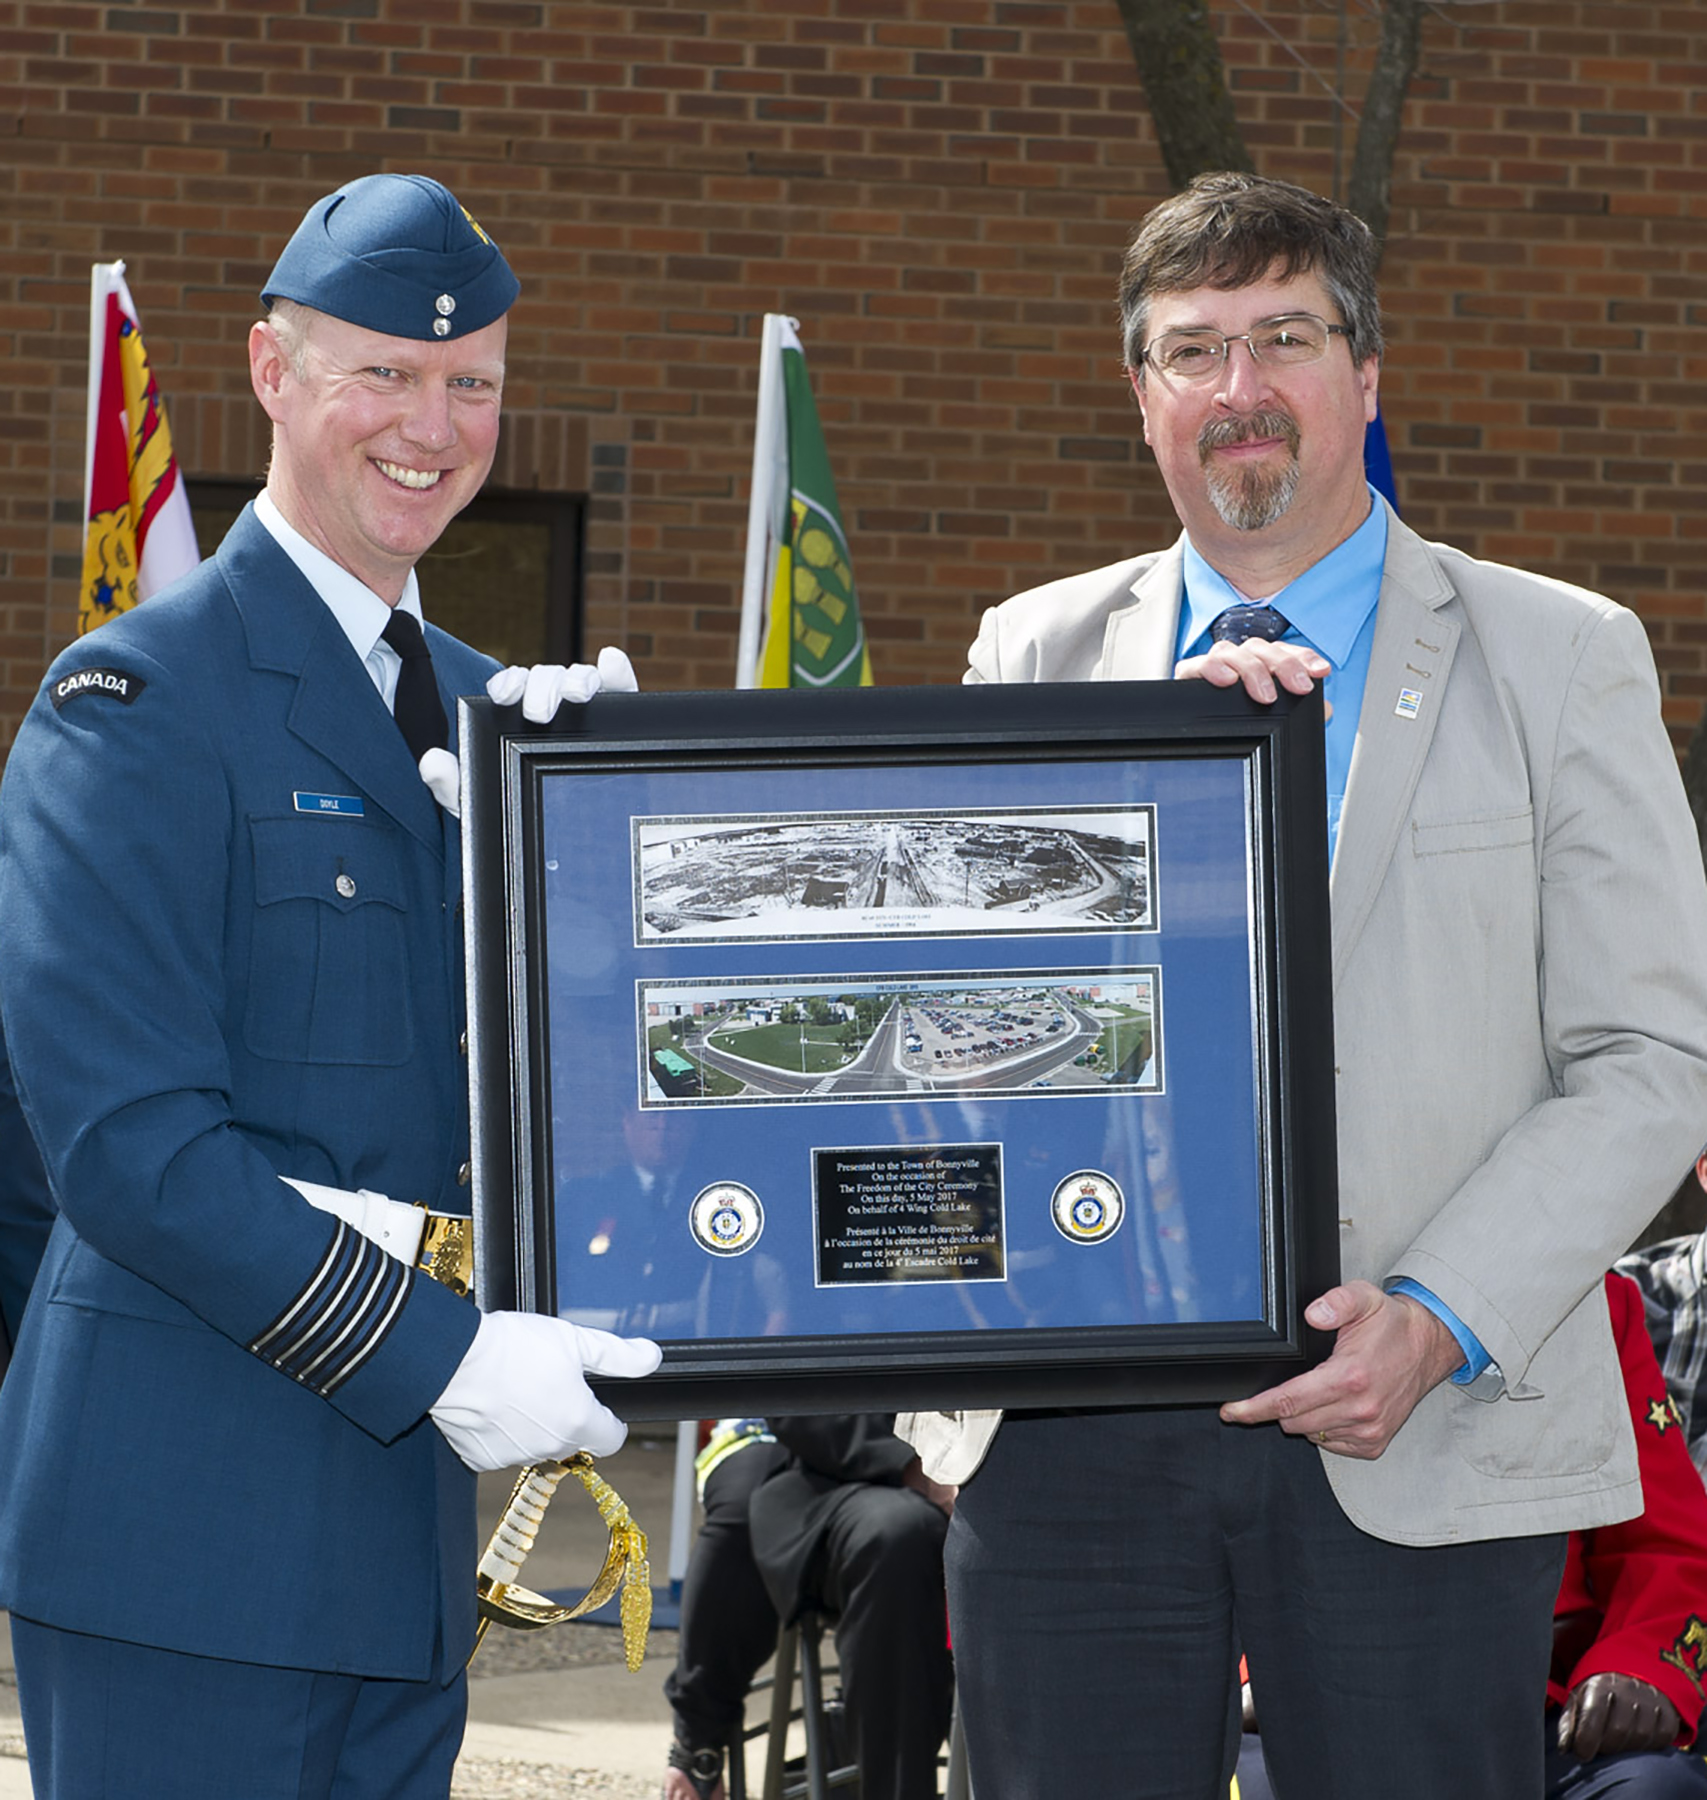 4 Wing Cold Lake, Alberta, commanding officer Colonel Paul Doyle presents Mayor of Bonnyville, Alberta, Gene Sobolewski with a gift during the Freedom of the City for the Town of Bonnyville on May 5, 2017. 4 Wing was granted Freedom of the City for the Town of Bonnyville and the Municipal District of Bonnyville, Alberta. PHOTO: Corporal Justin Roy, CK07-2017-0343-006